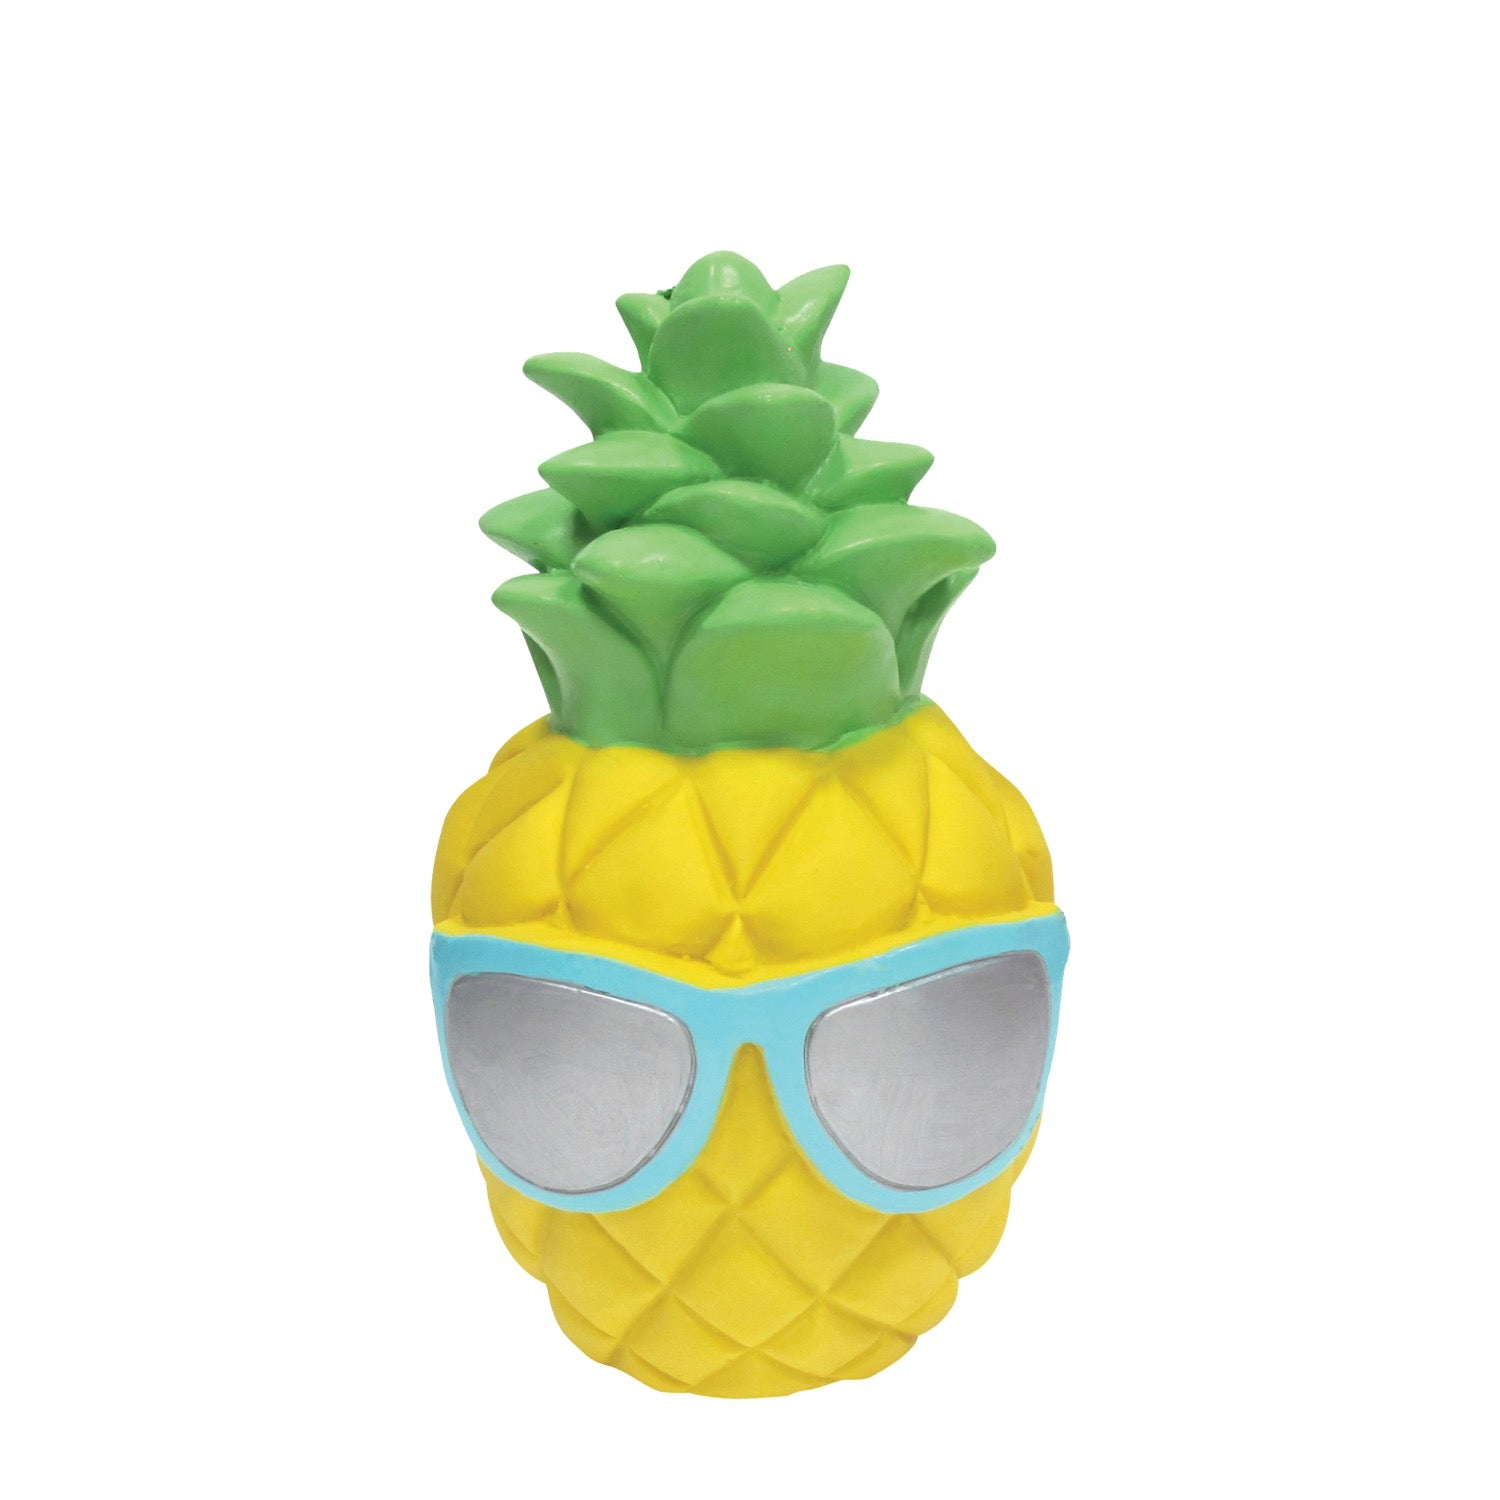 Pineapple Fiesta Squeaky Toy